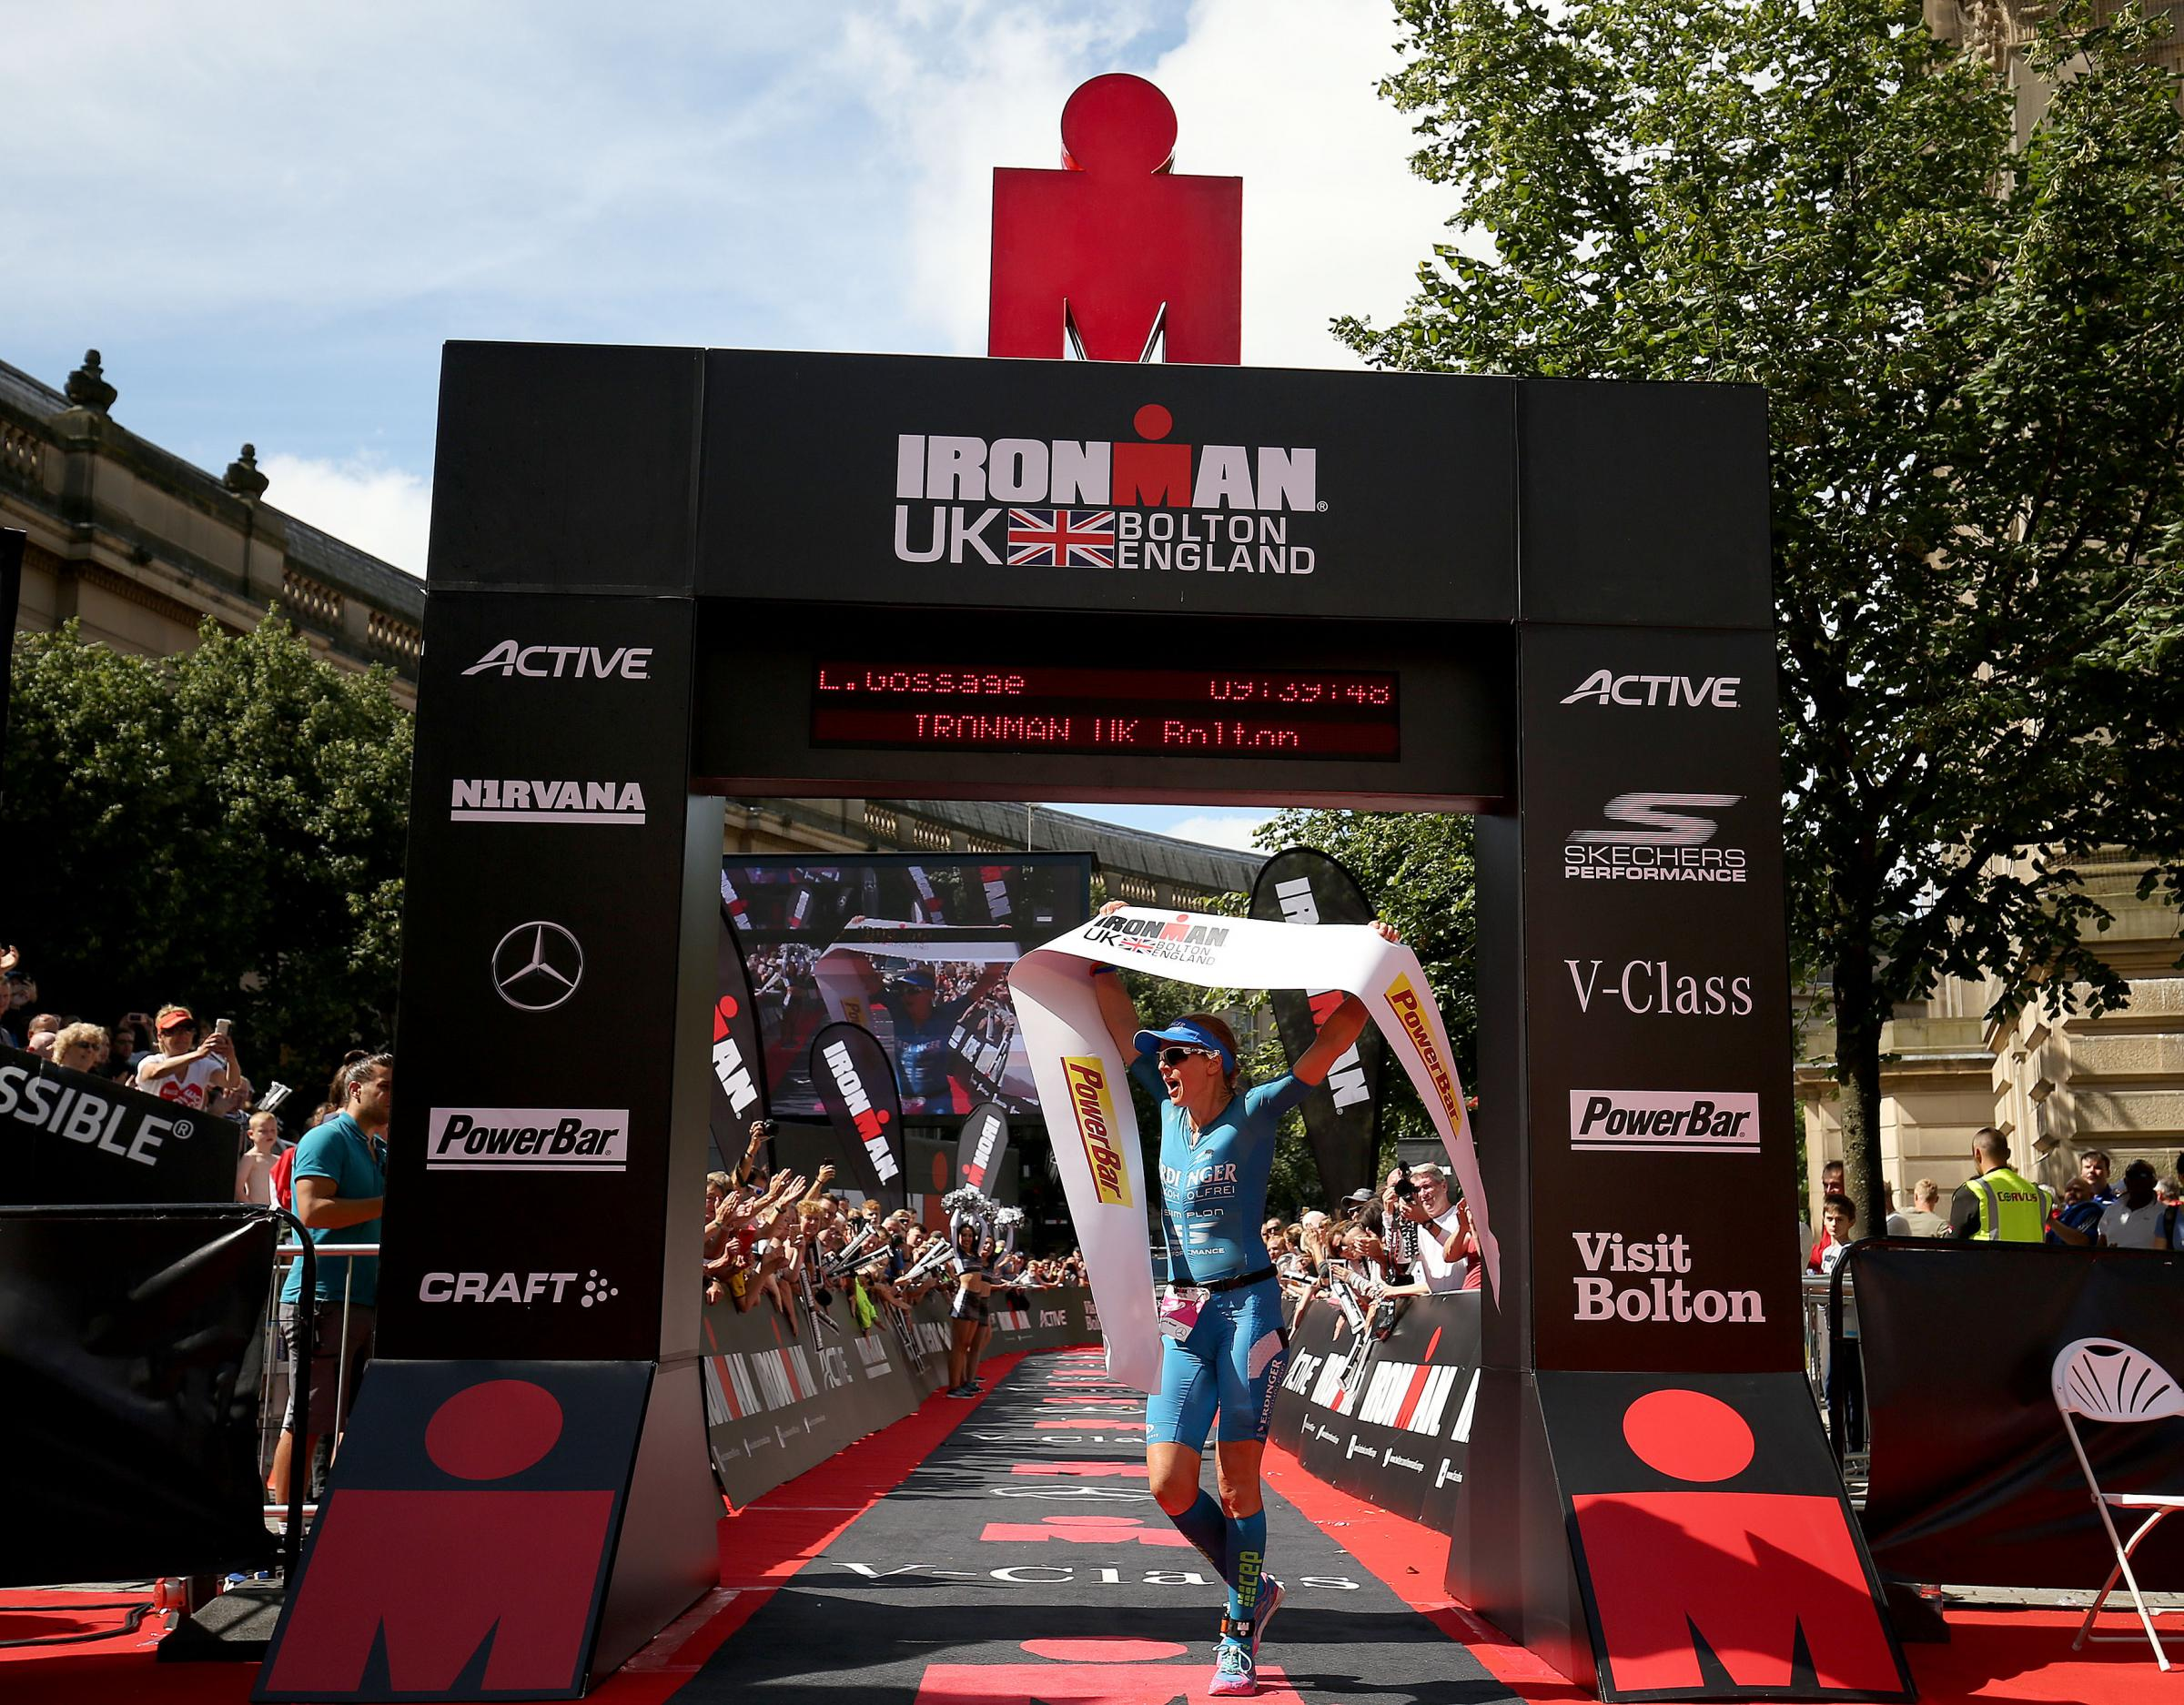 Lucy Gossage of Britain celebrates winning the women's race at Ironman UK.Picture by Nigel Roddis/Getty Images for Ironman.